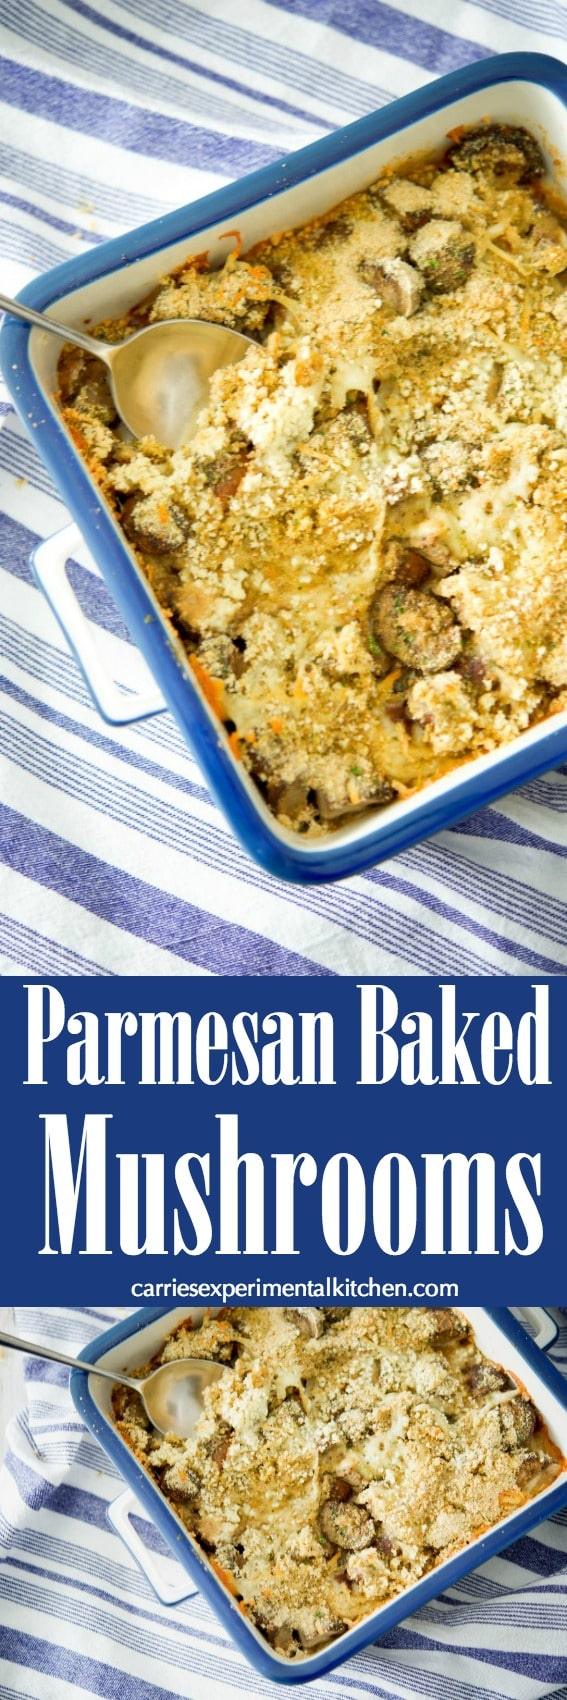 Portobello mushrooms tossed with fresh parsley, garlic and basil; then topped with a Parmesan cheese breadcrumb crust and baked. #mushrooms #vegetables #sidedish